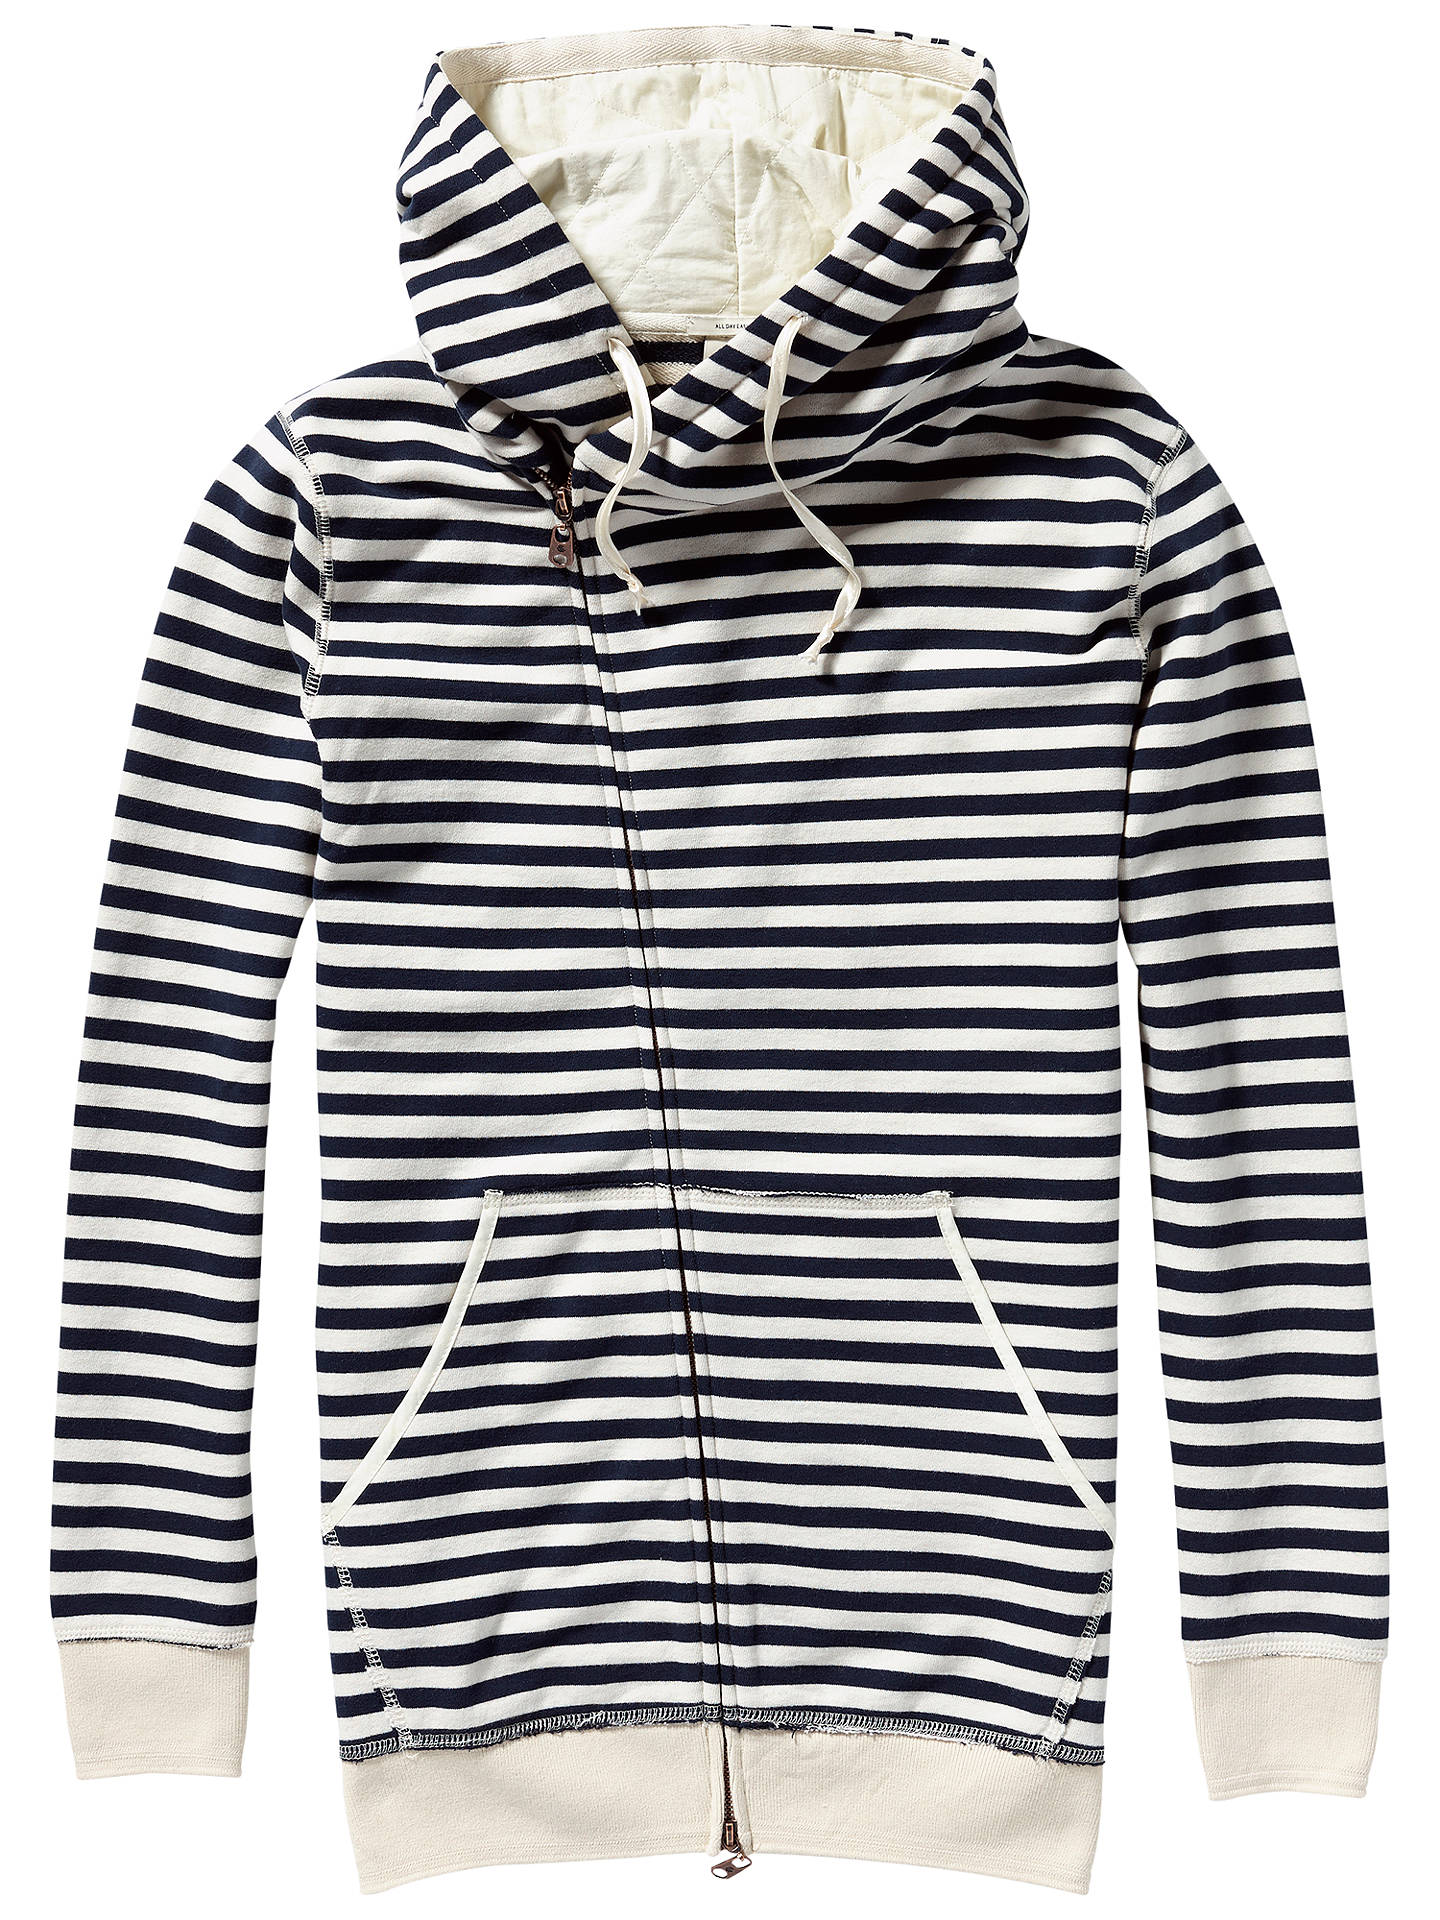 Buy Maison Scotch Home Alone Twisted Hoodie, Navy/Ecru, S Online at johnlewis.com